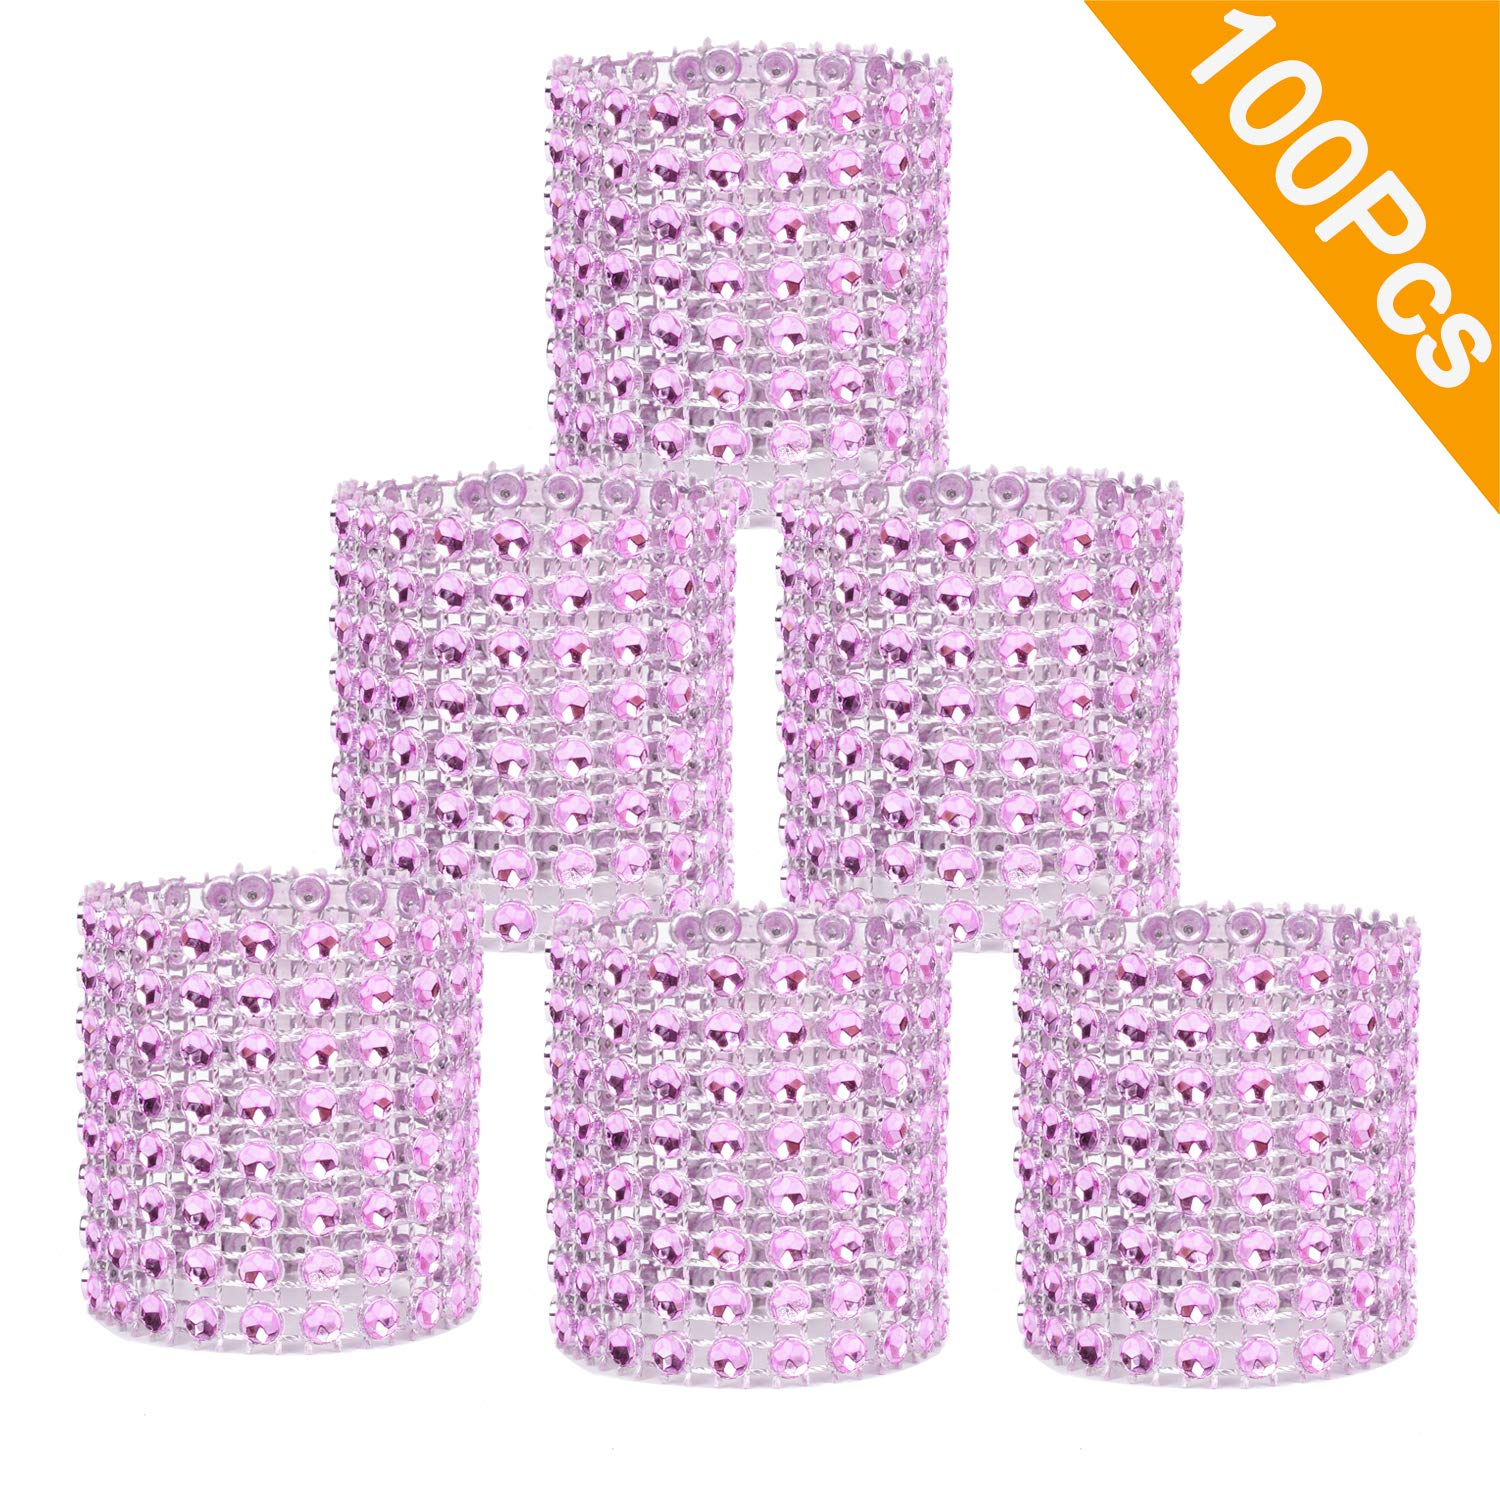 DIY Decoration,Set of 50 Gold Napkin Rings Buckles Rhinestone Napkin Rings for Table Decorations Dinner,Party DearHouse Napkin Rings Wedding